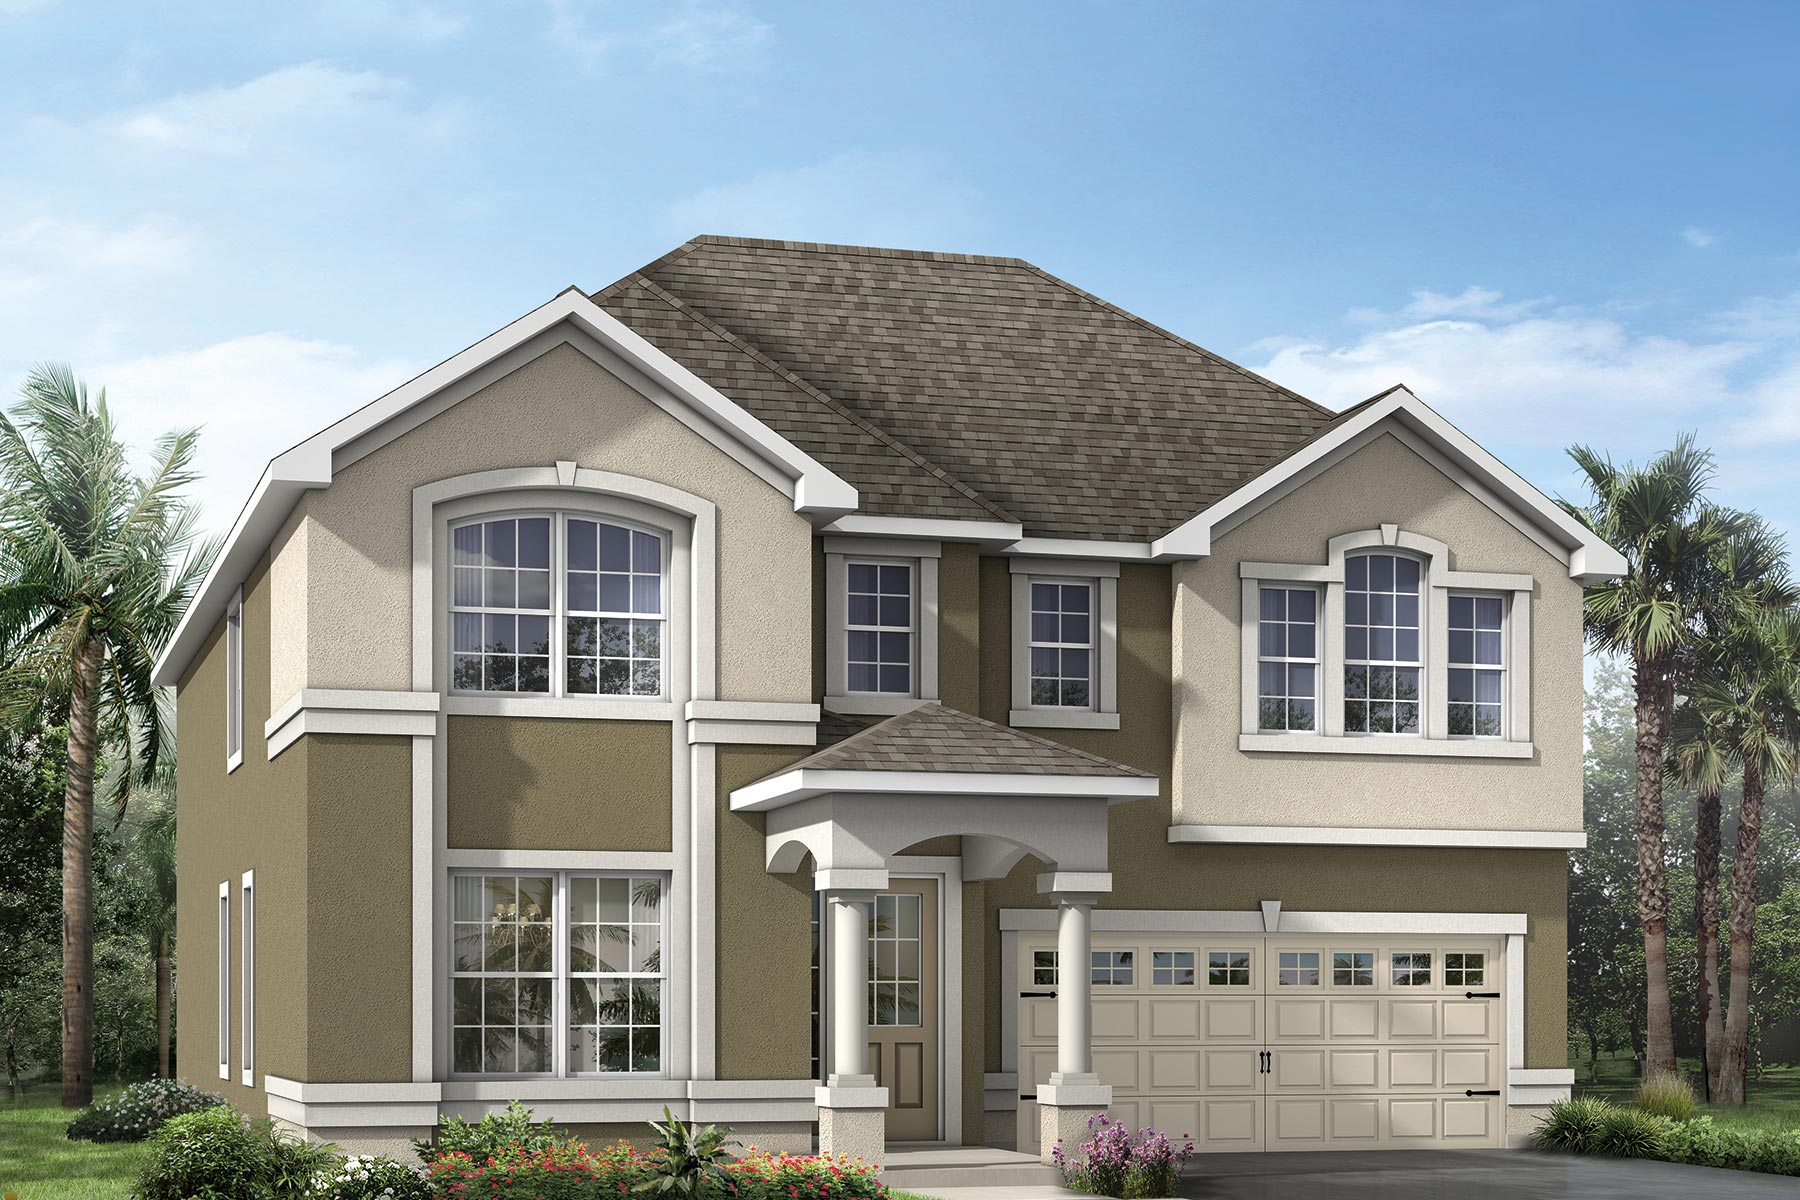 Winthrop Plan Elevation Front at Tapestry in Kissimmee Florida by Mattamy Homes